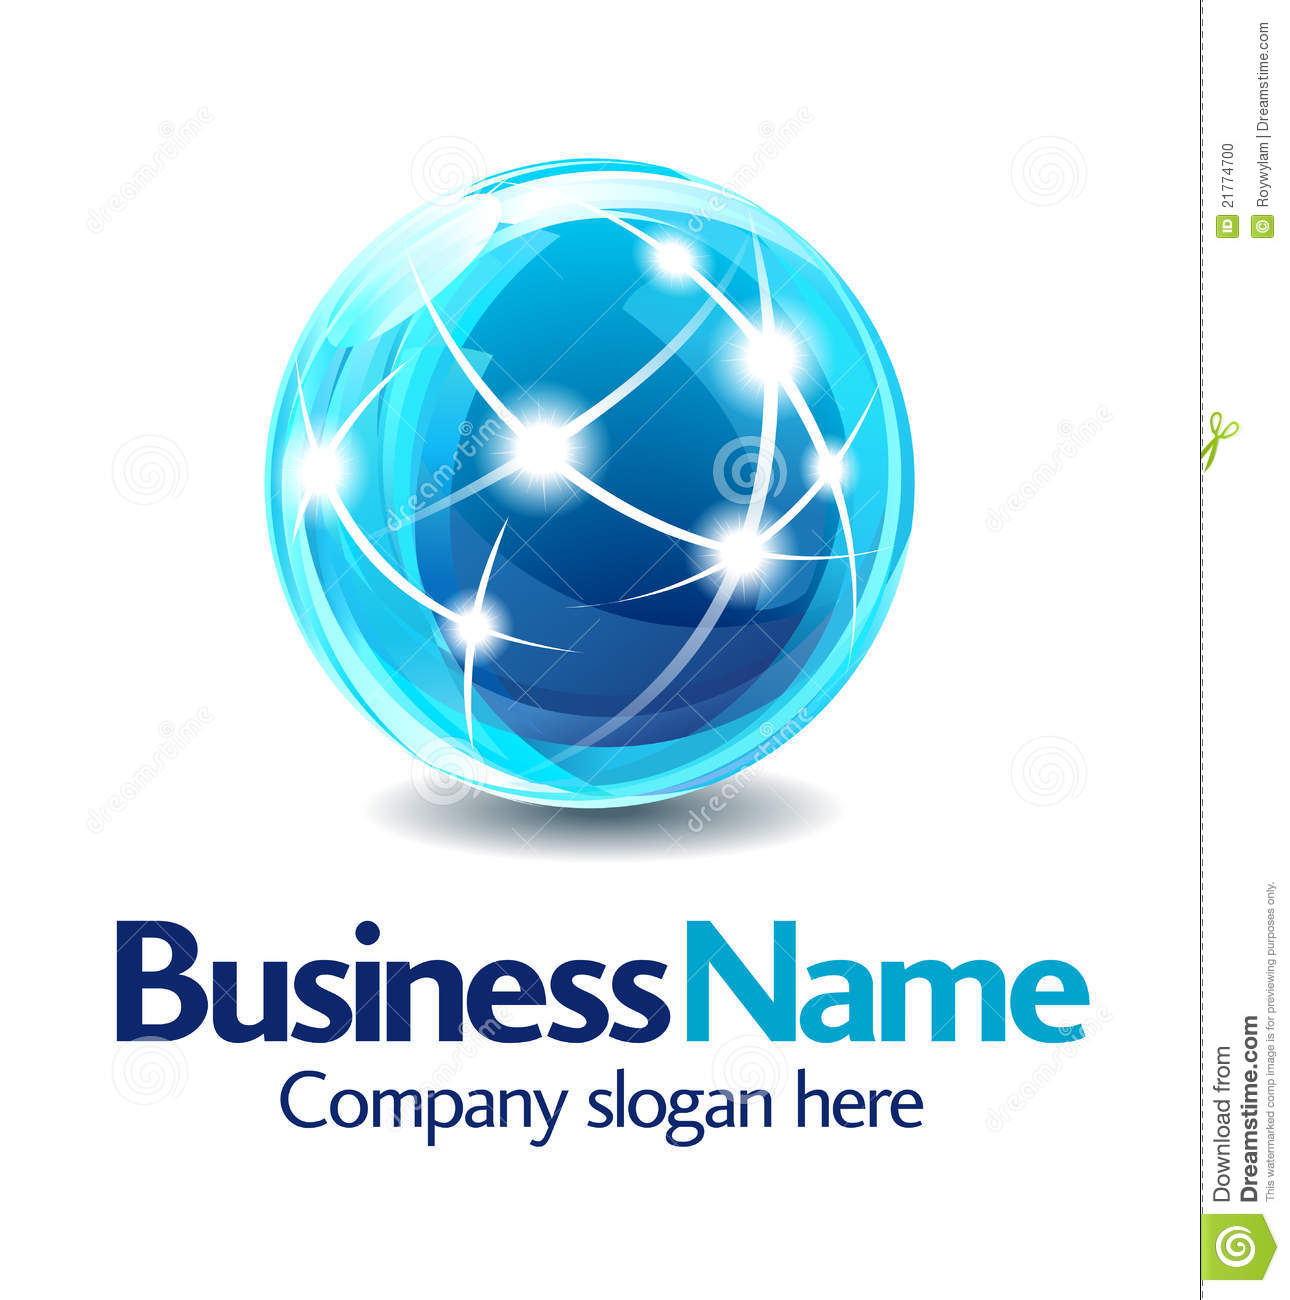 category logo creative logo designs ideas - Business Logo Design Ideas